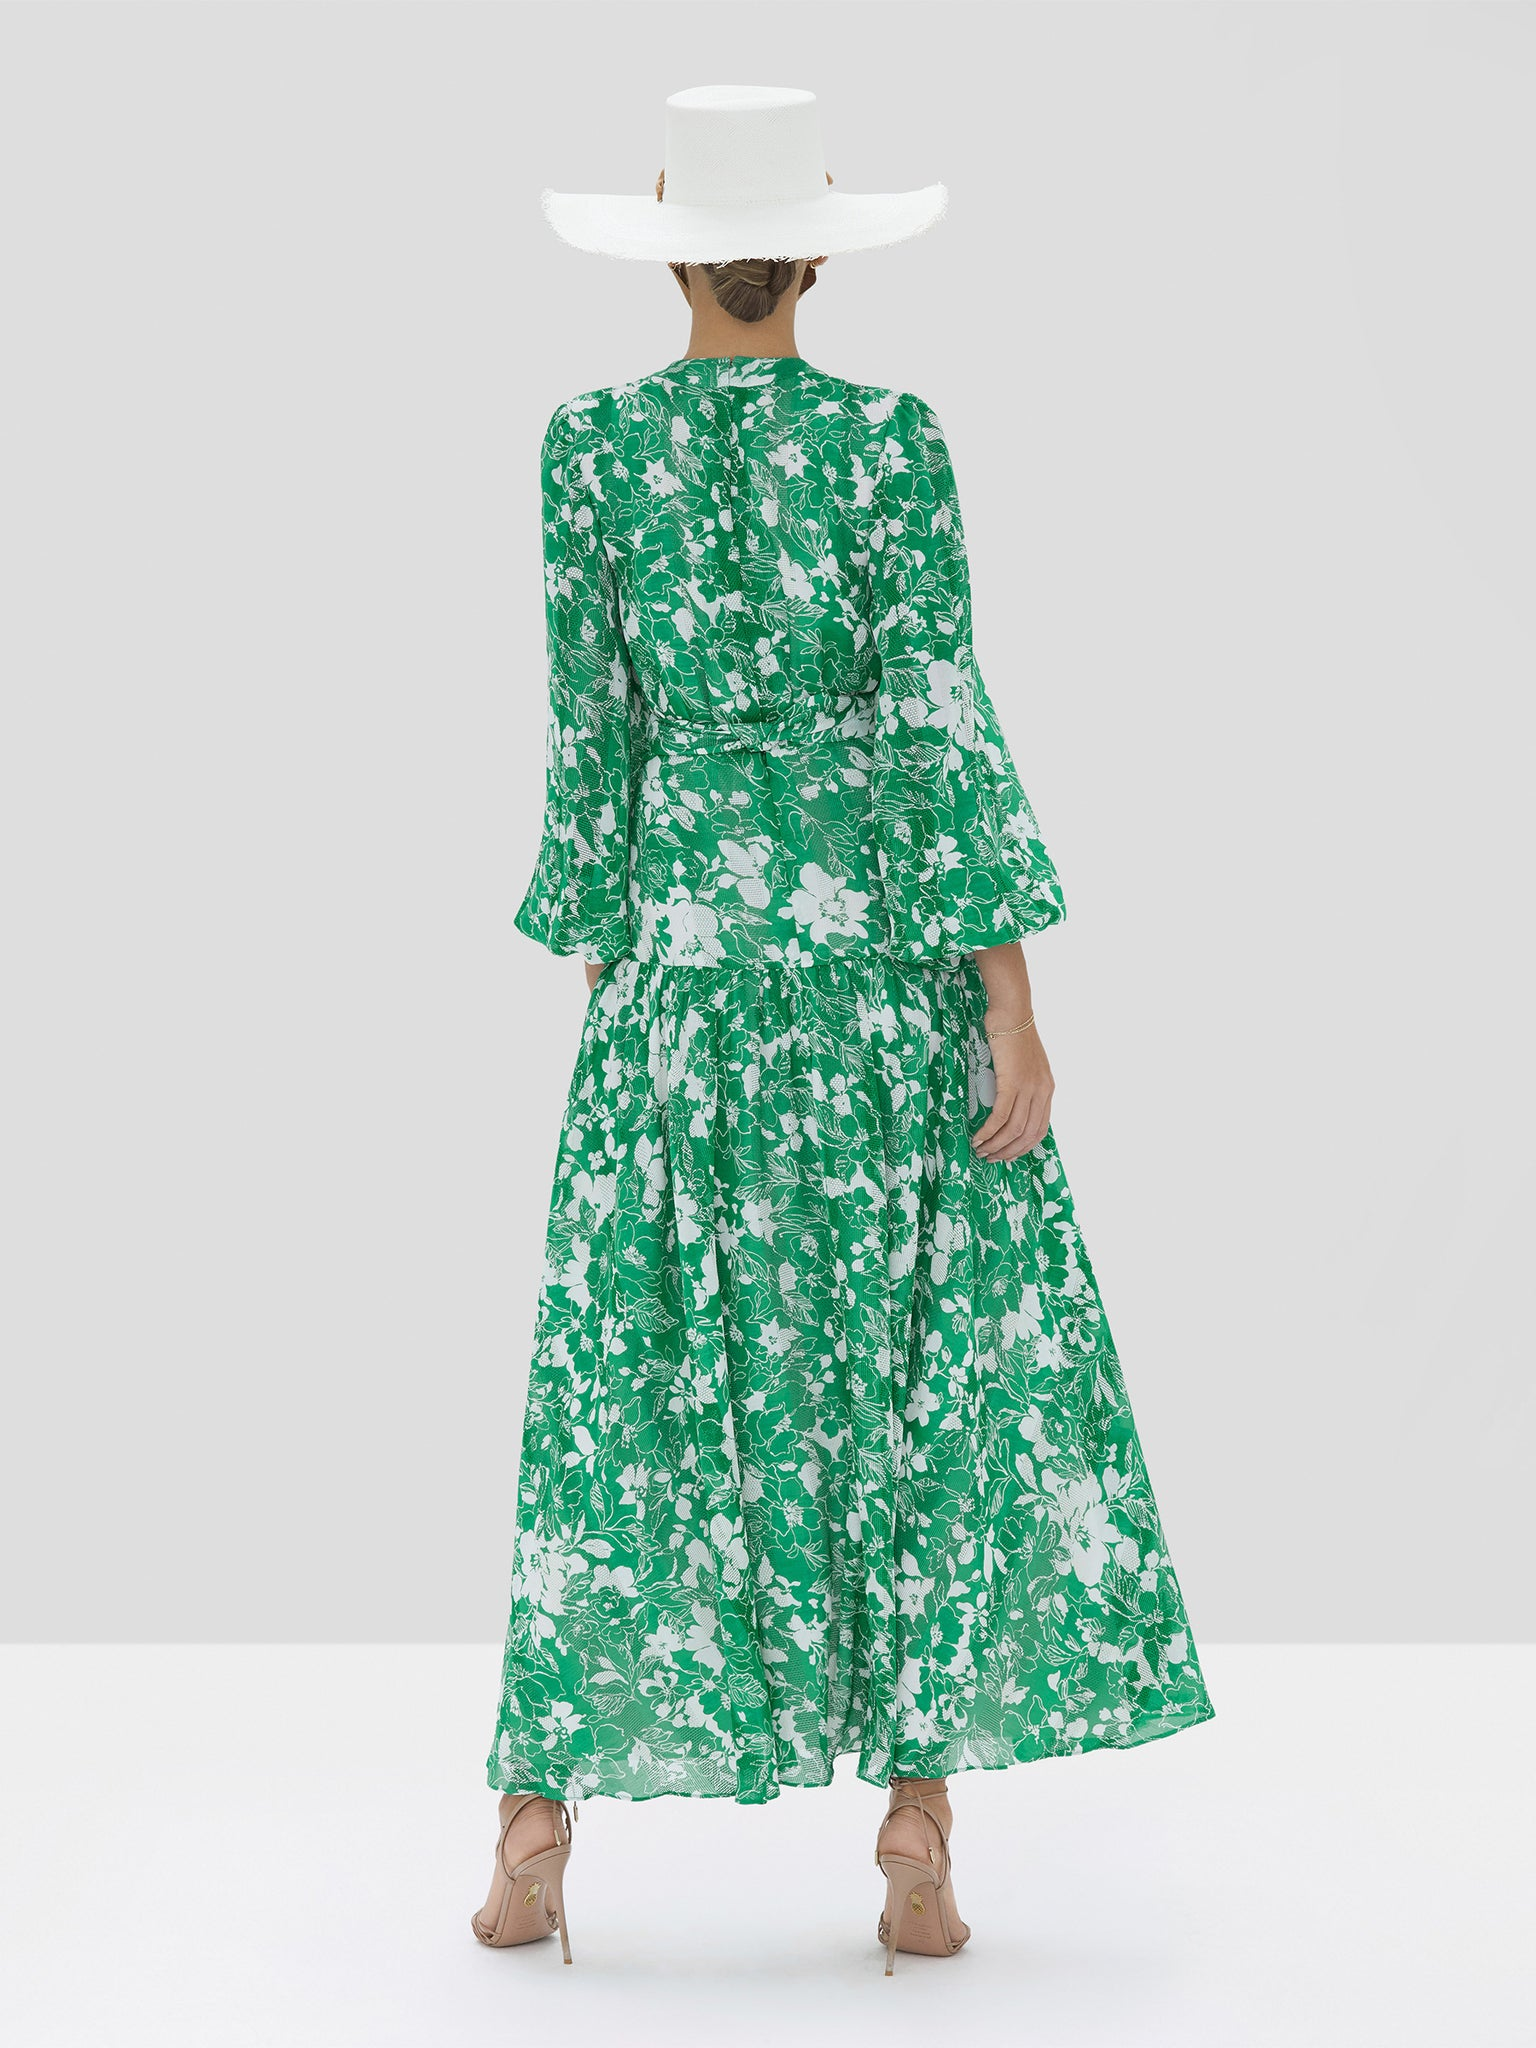 The Cerca Romper in Emerald Floral from the Spring Summer 2020 Ready To Wear Collection.  - Rear View